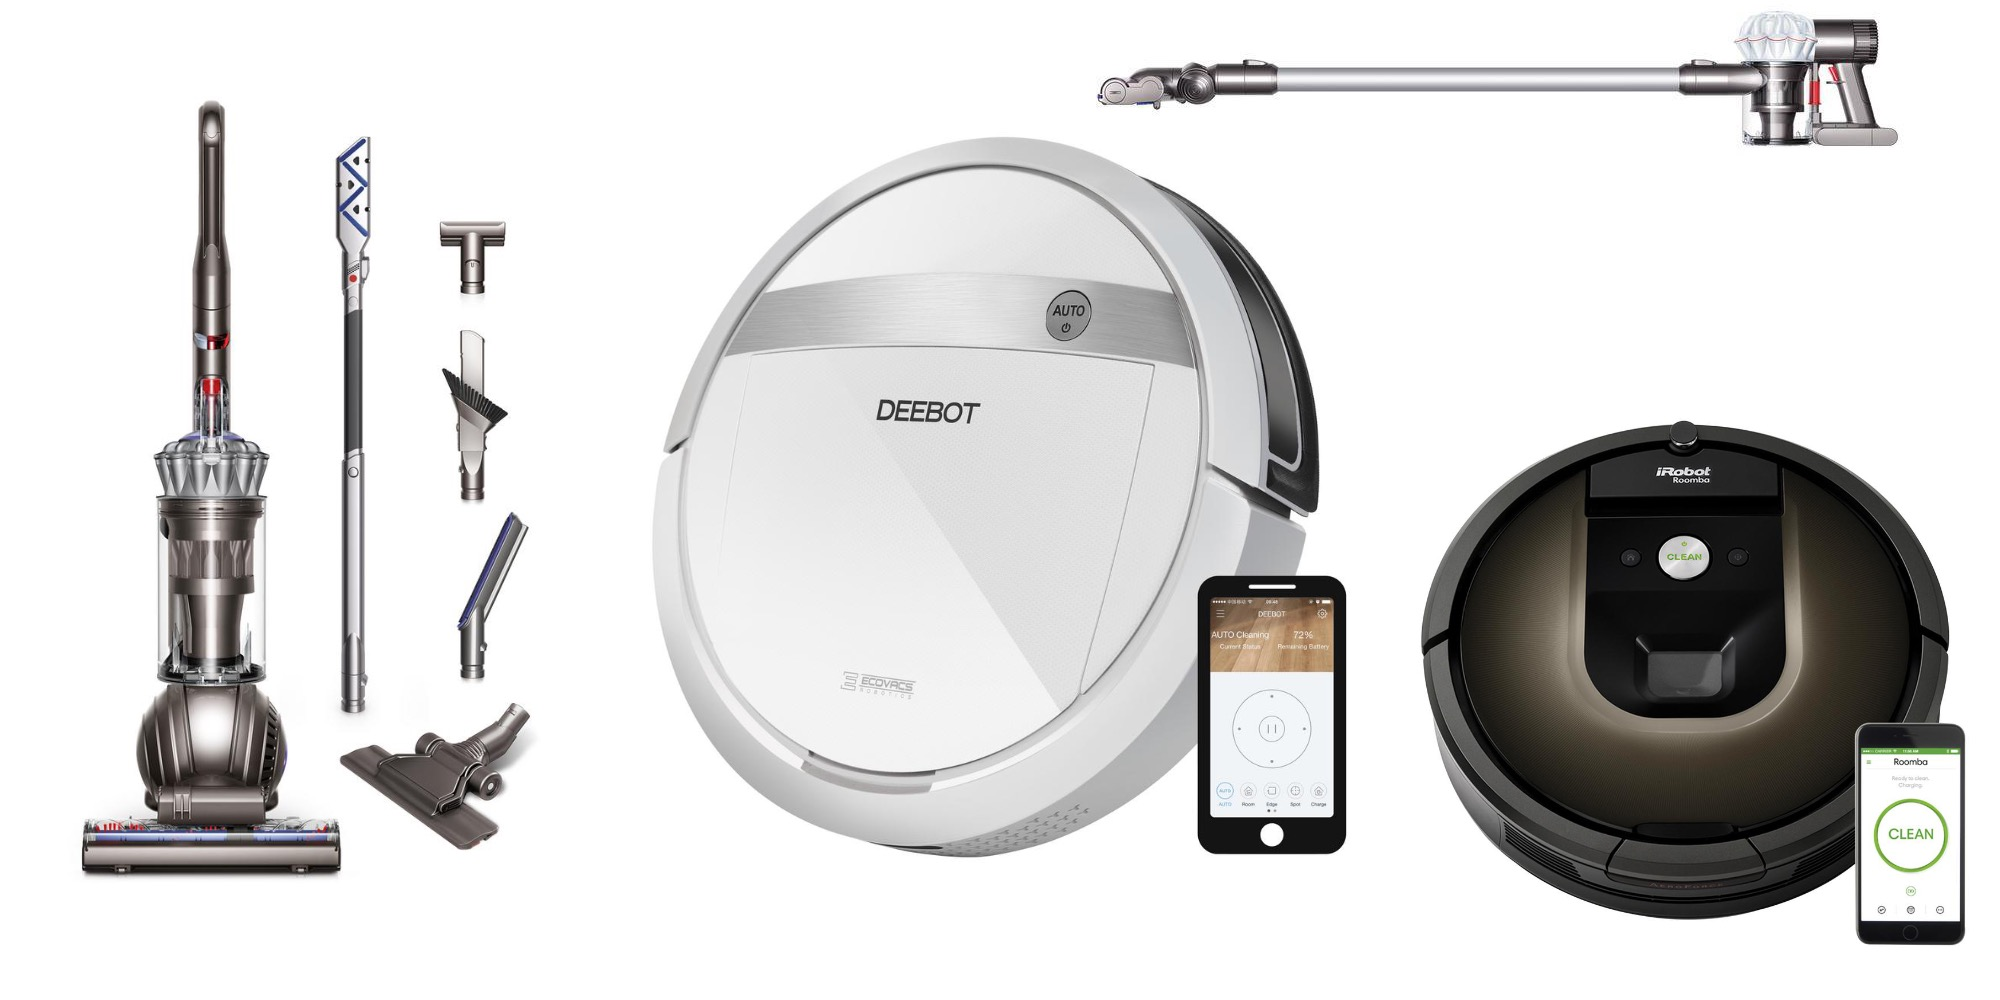 Home Depot Offers Ecovacs Robot Vacuum Mop For 229 Reg